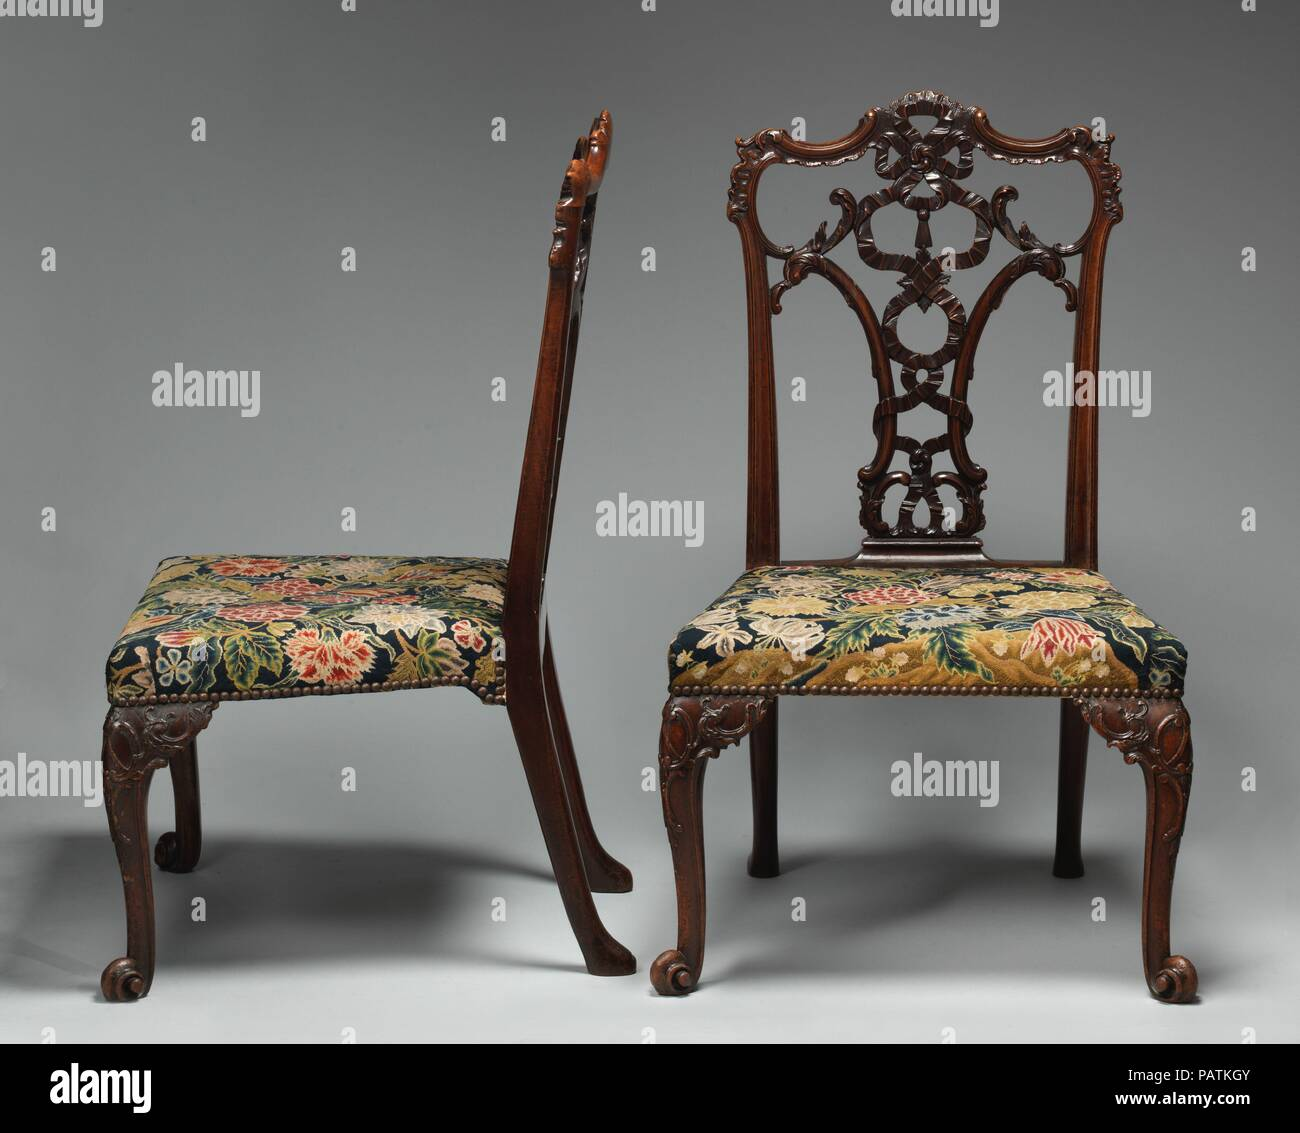 Fauteuils Chippendale Thomas Chippendale 1718 1779 After Photos Thomas Chippendale